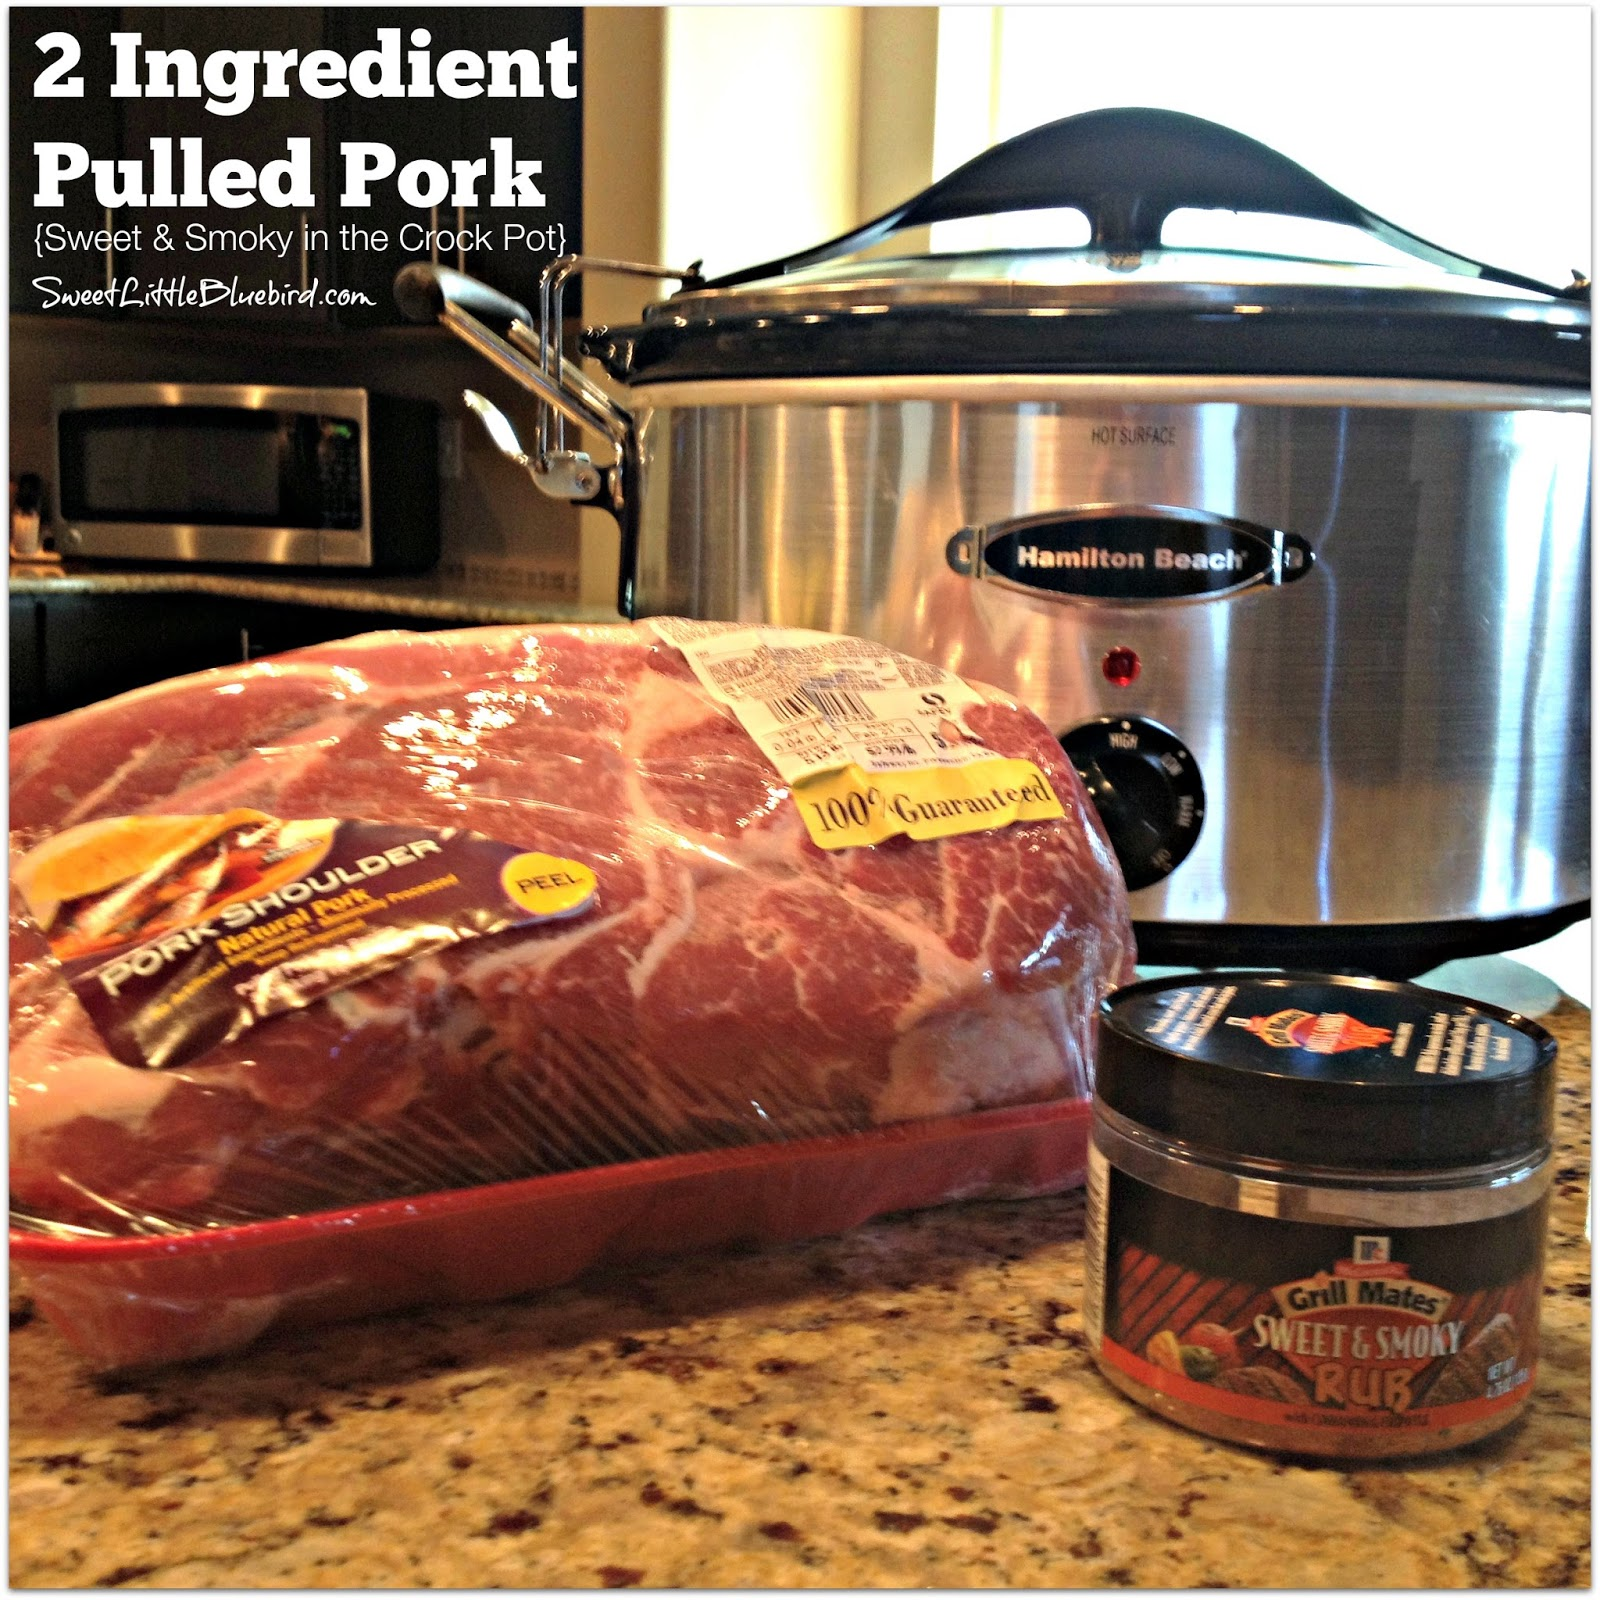 I Am Not Affiliated With Mccormick This Is Just A Really Good Rub And Makes The Best Pulled Pork In Your Crock Pot